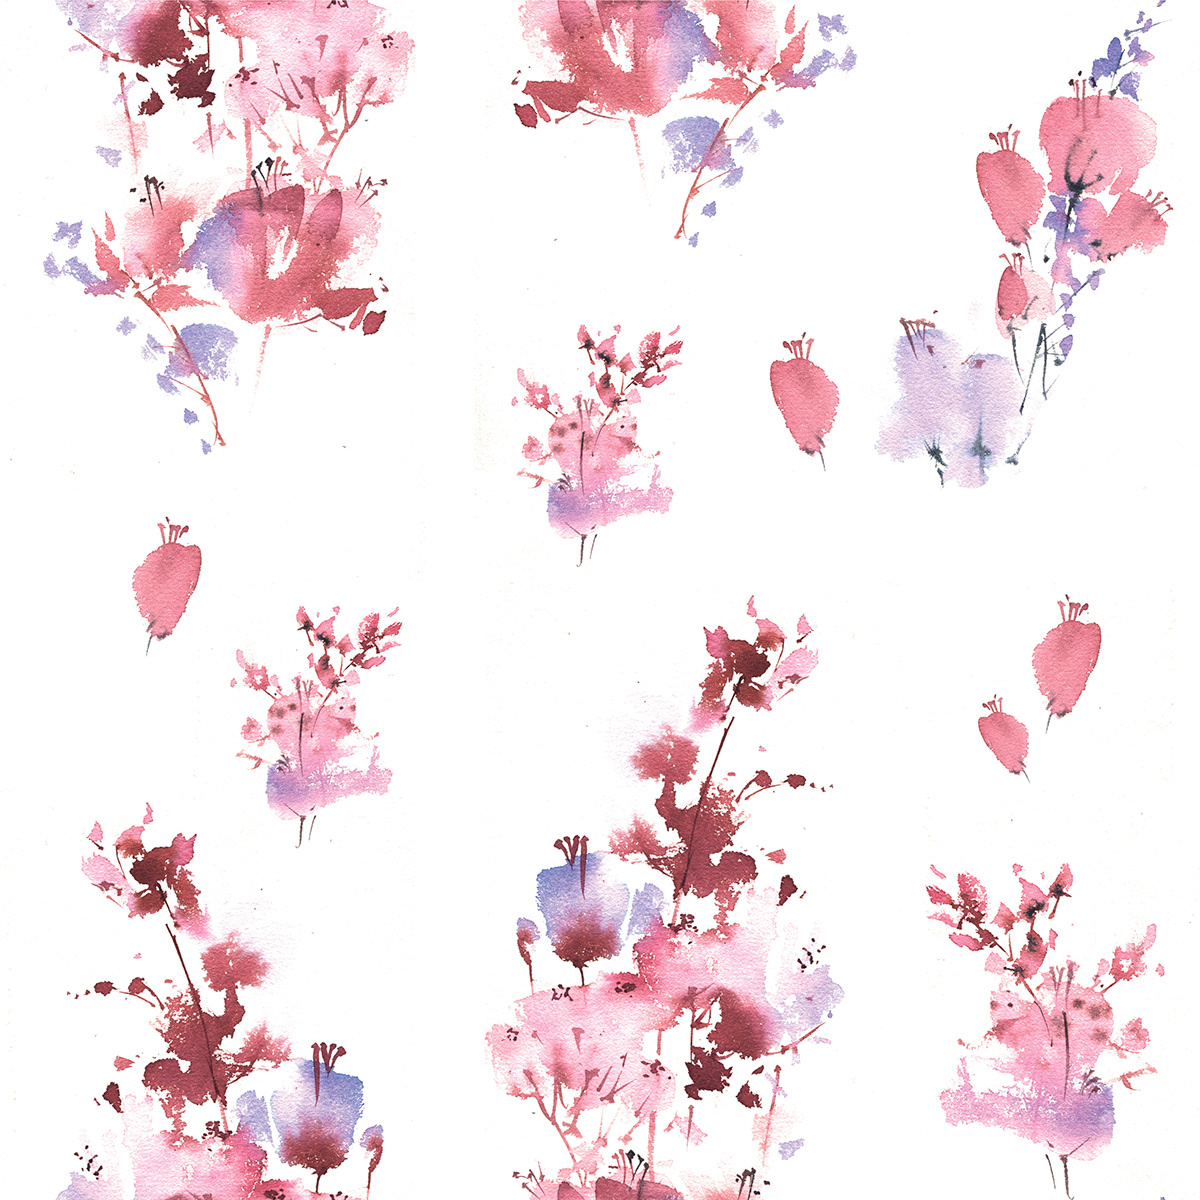 artist graphic pattern watercolor